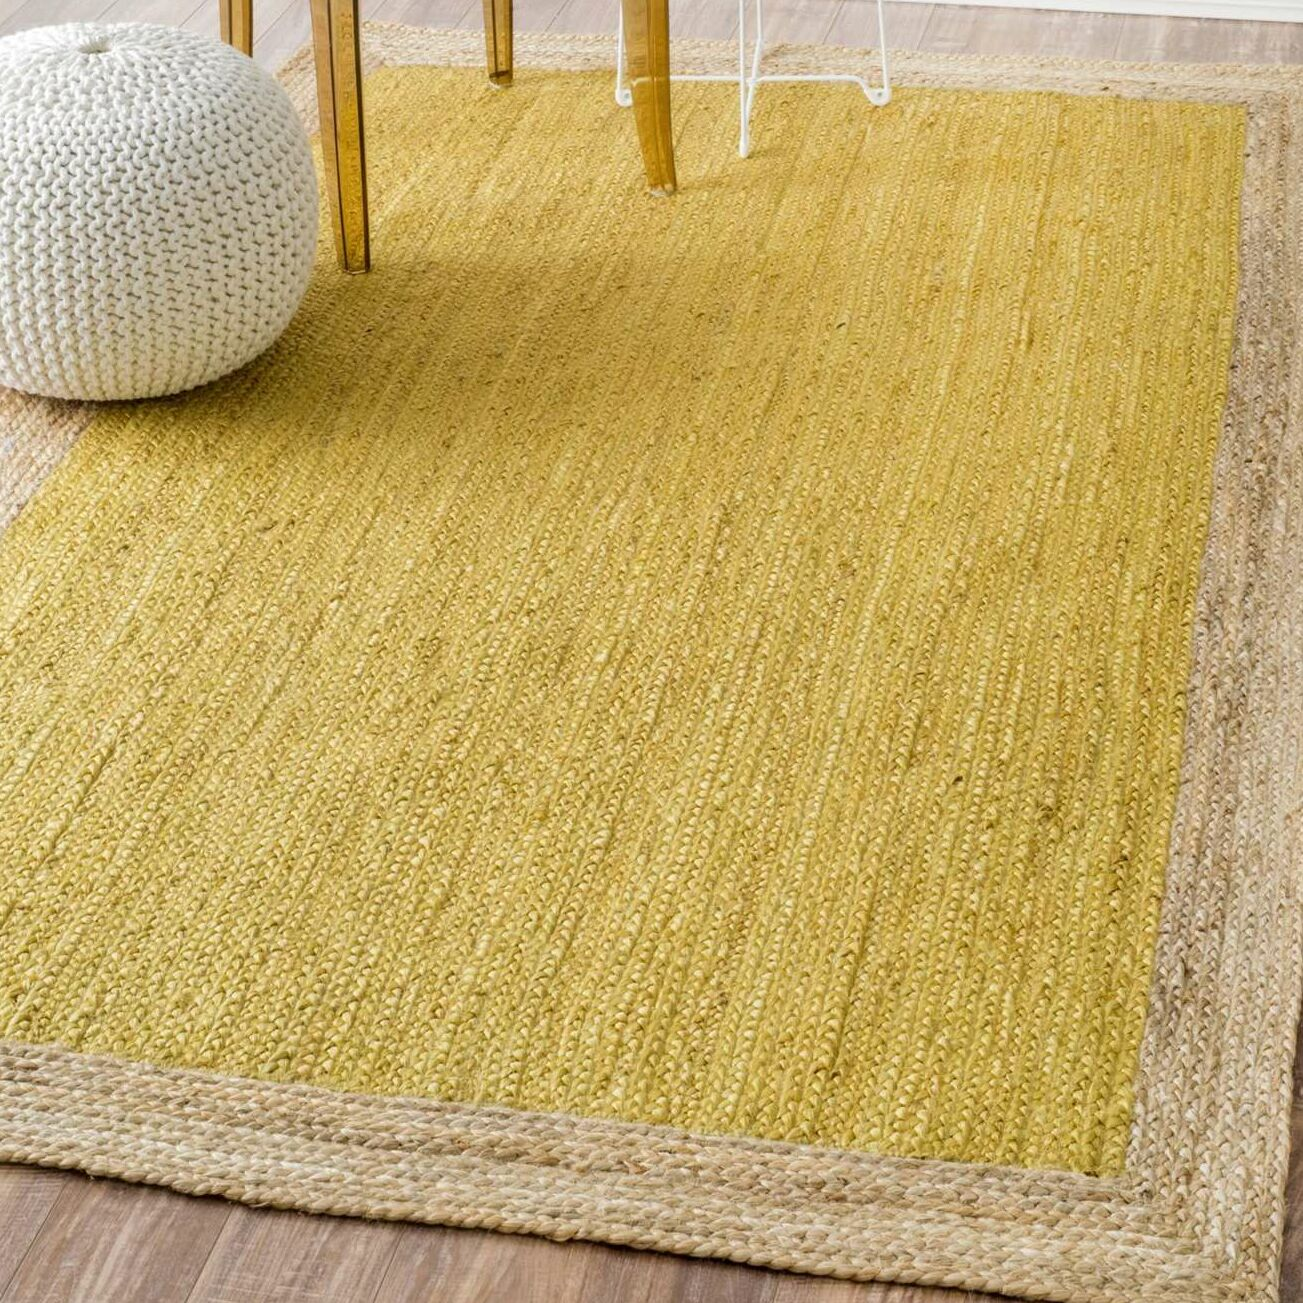 Greiner Hand-Woven Yellow Area Rug Rug Size: Rectangle 9' x 12'